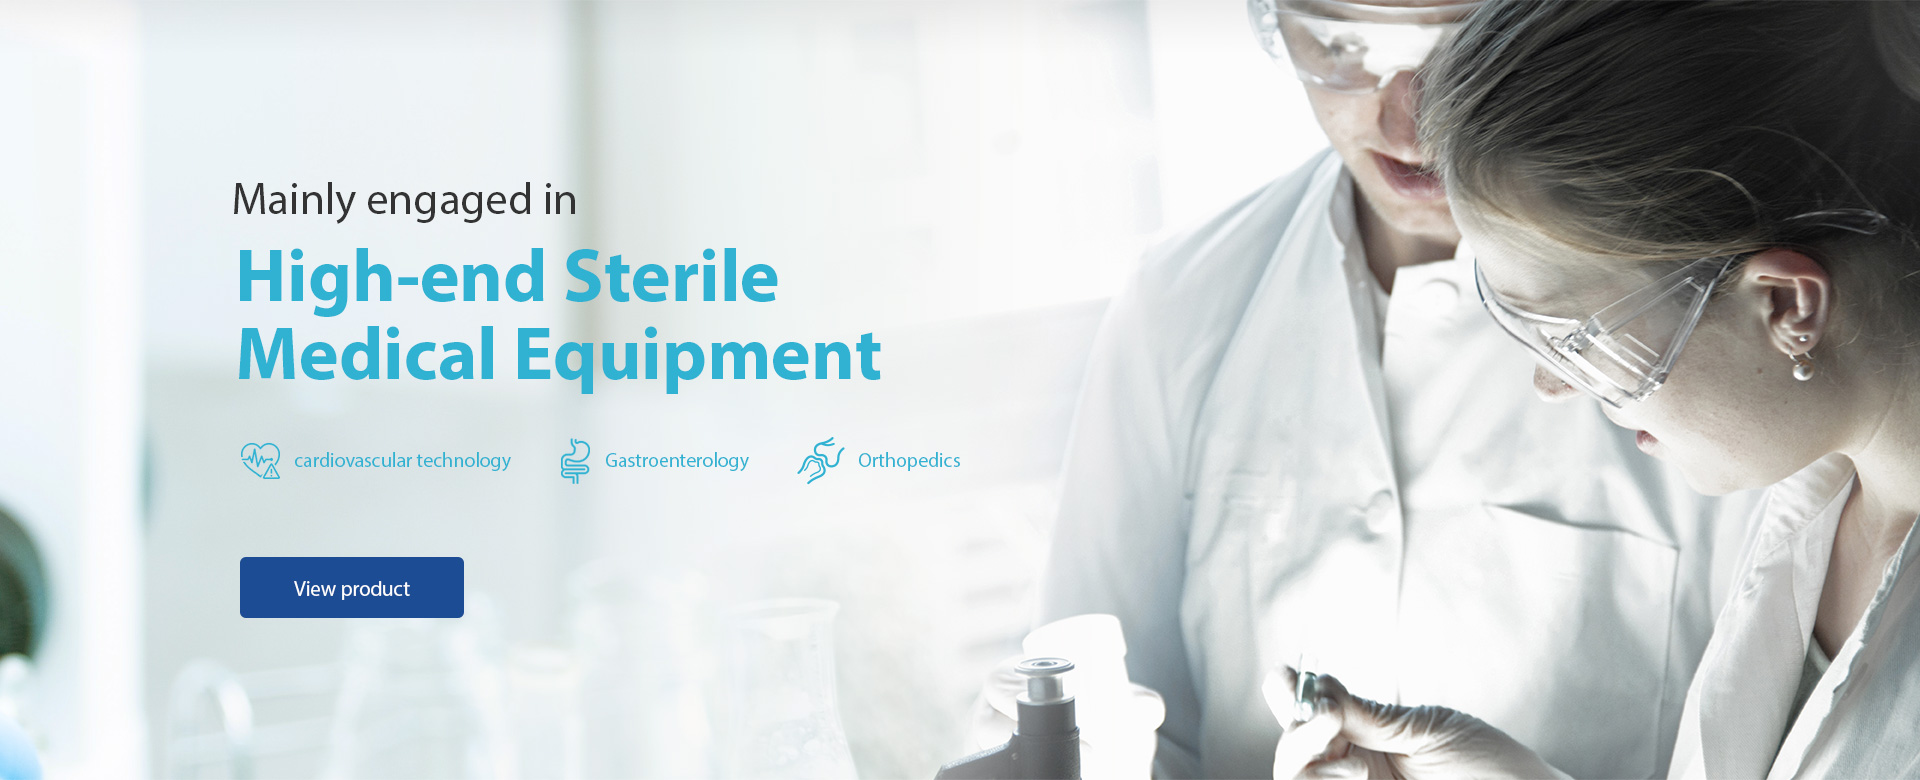 Mainly engaged in High-end Sterile Medical Equipment